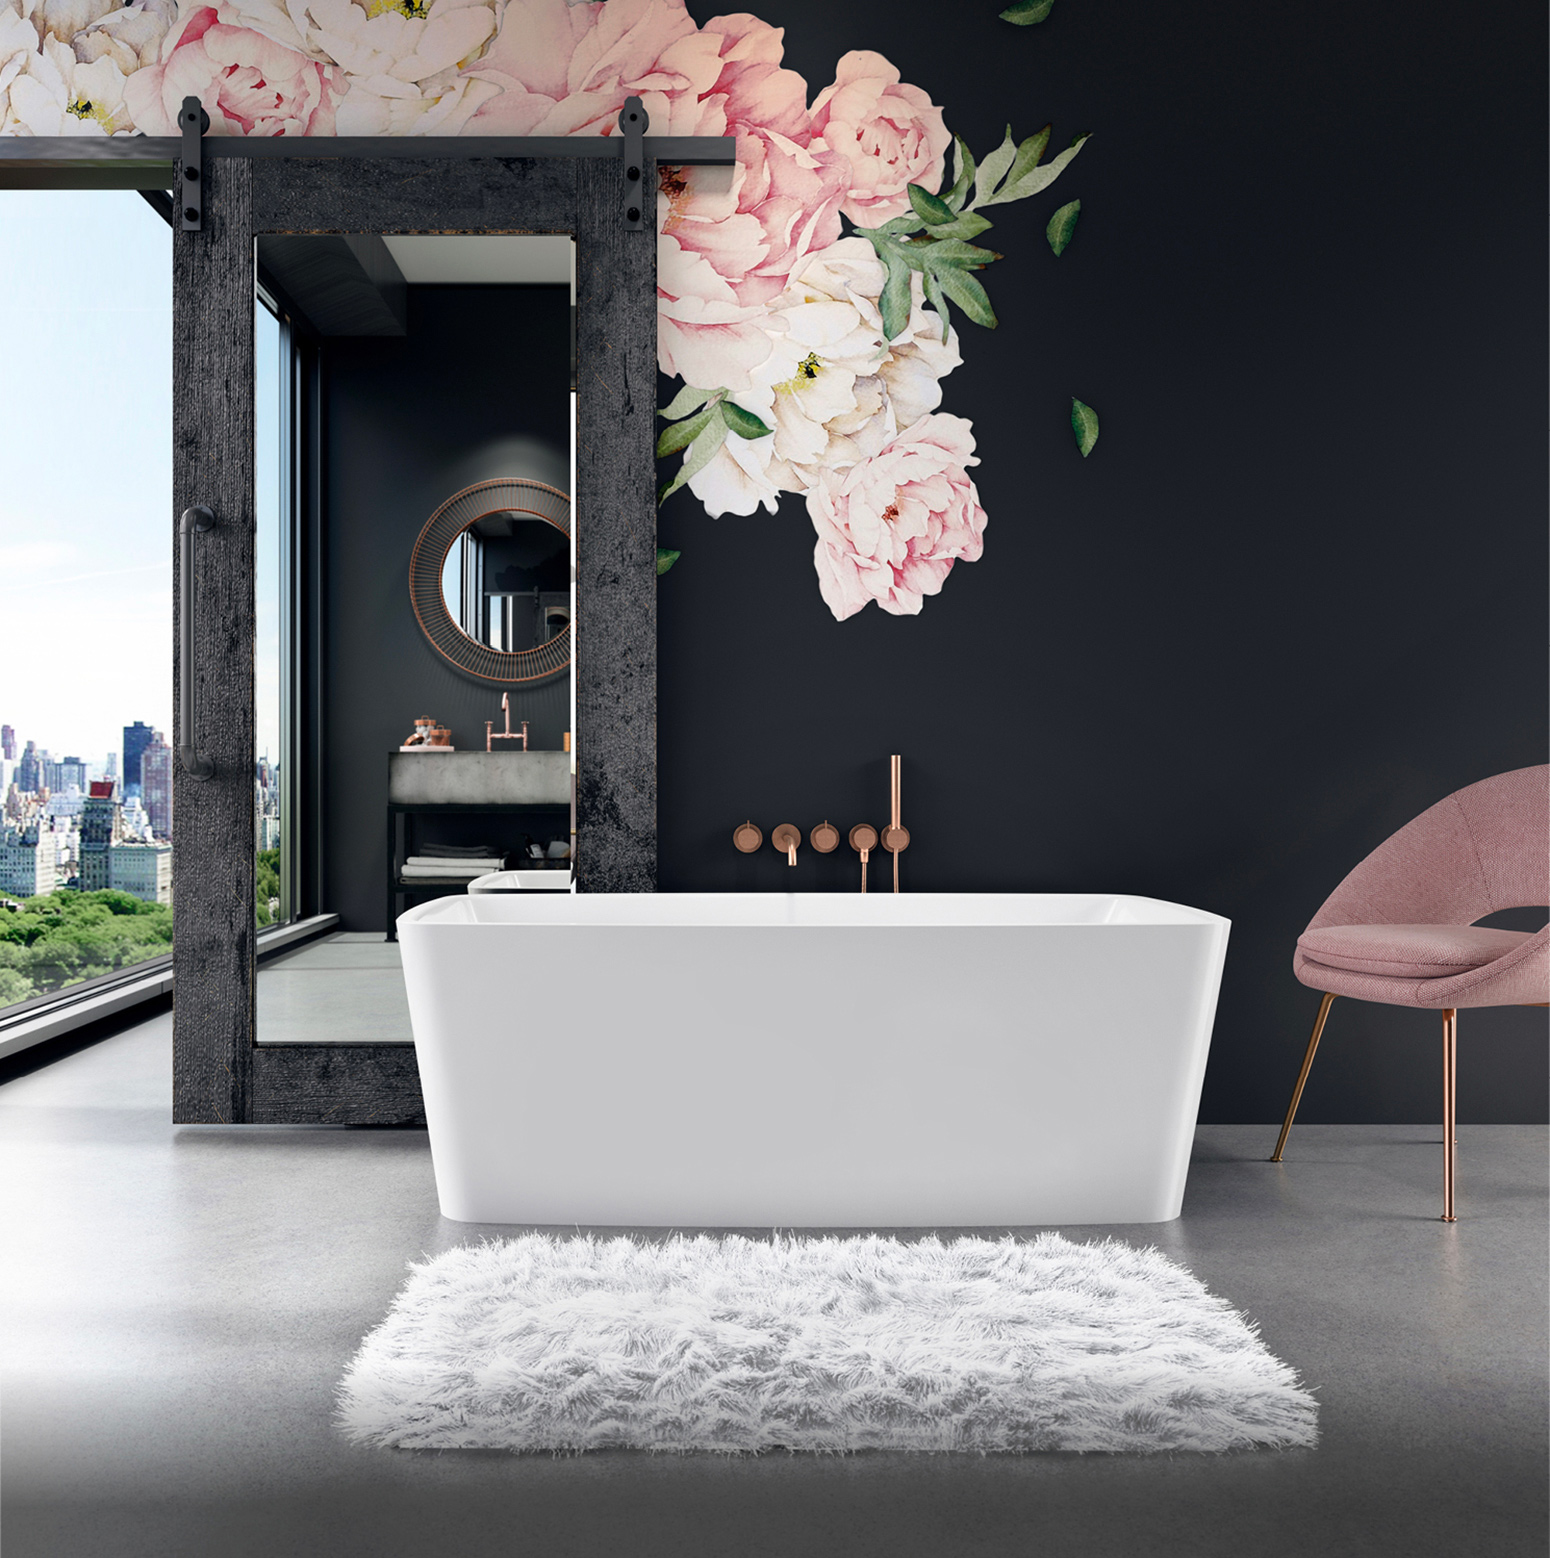 Bainultra Vibe® 5828 Fresstanding air jet bathtub for your modern bathroom